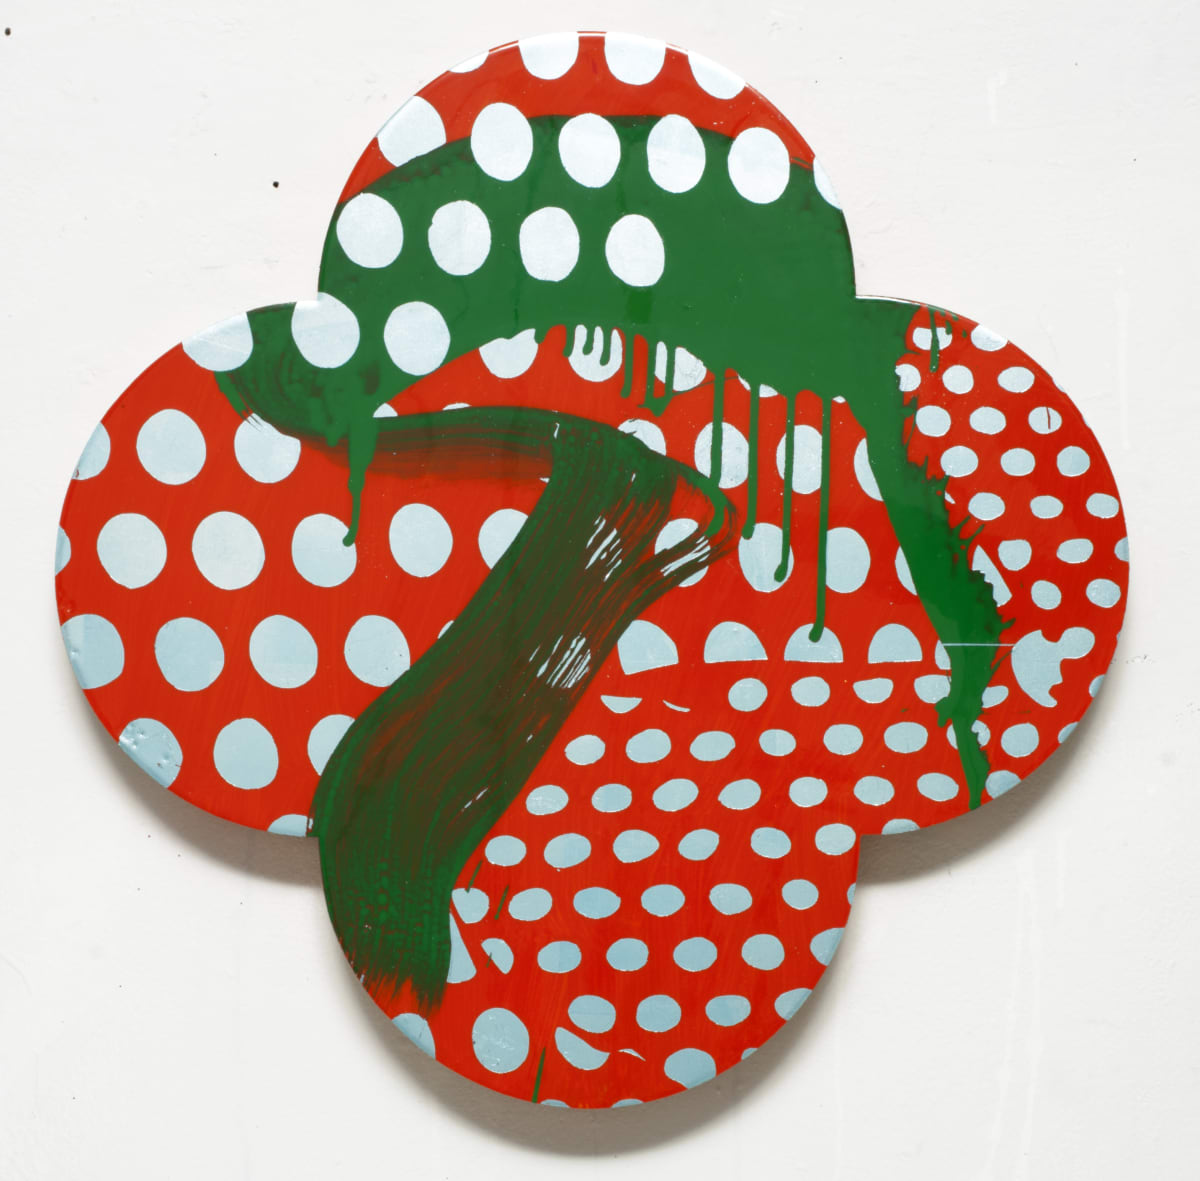 Max GIMBLETT On a Clear Day, 2012 Mixed media 25 x 25 in 63.5 x 63.5 cm